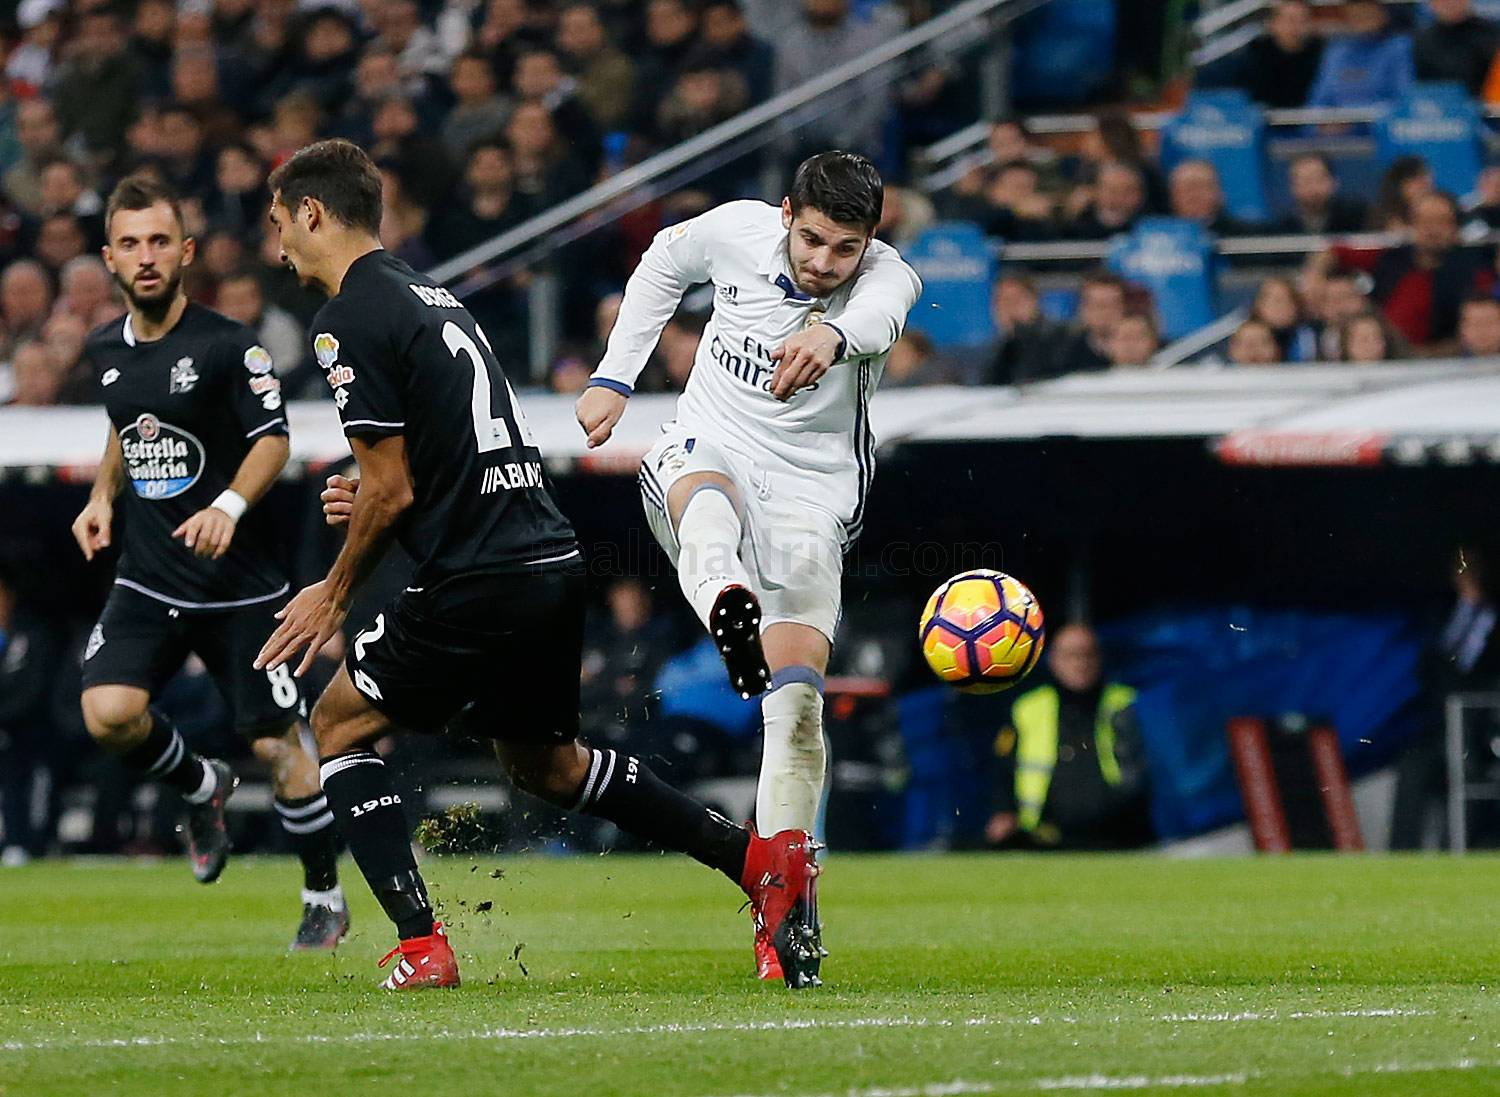 Real Madrid - Deportivo